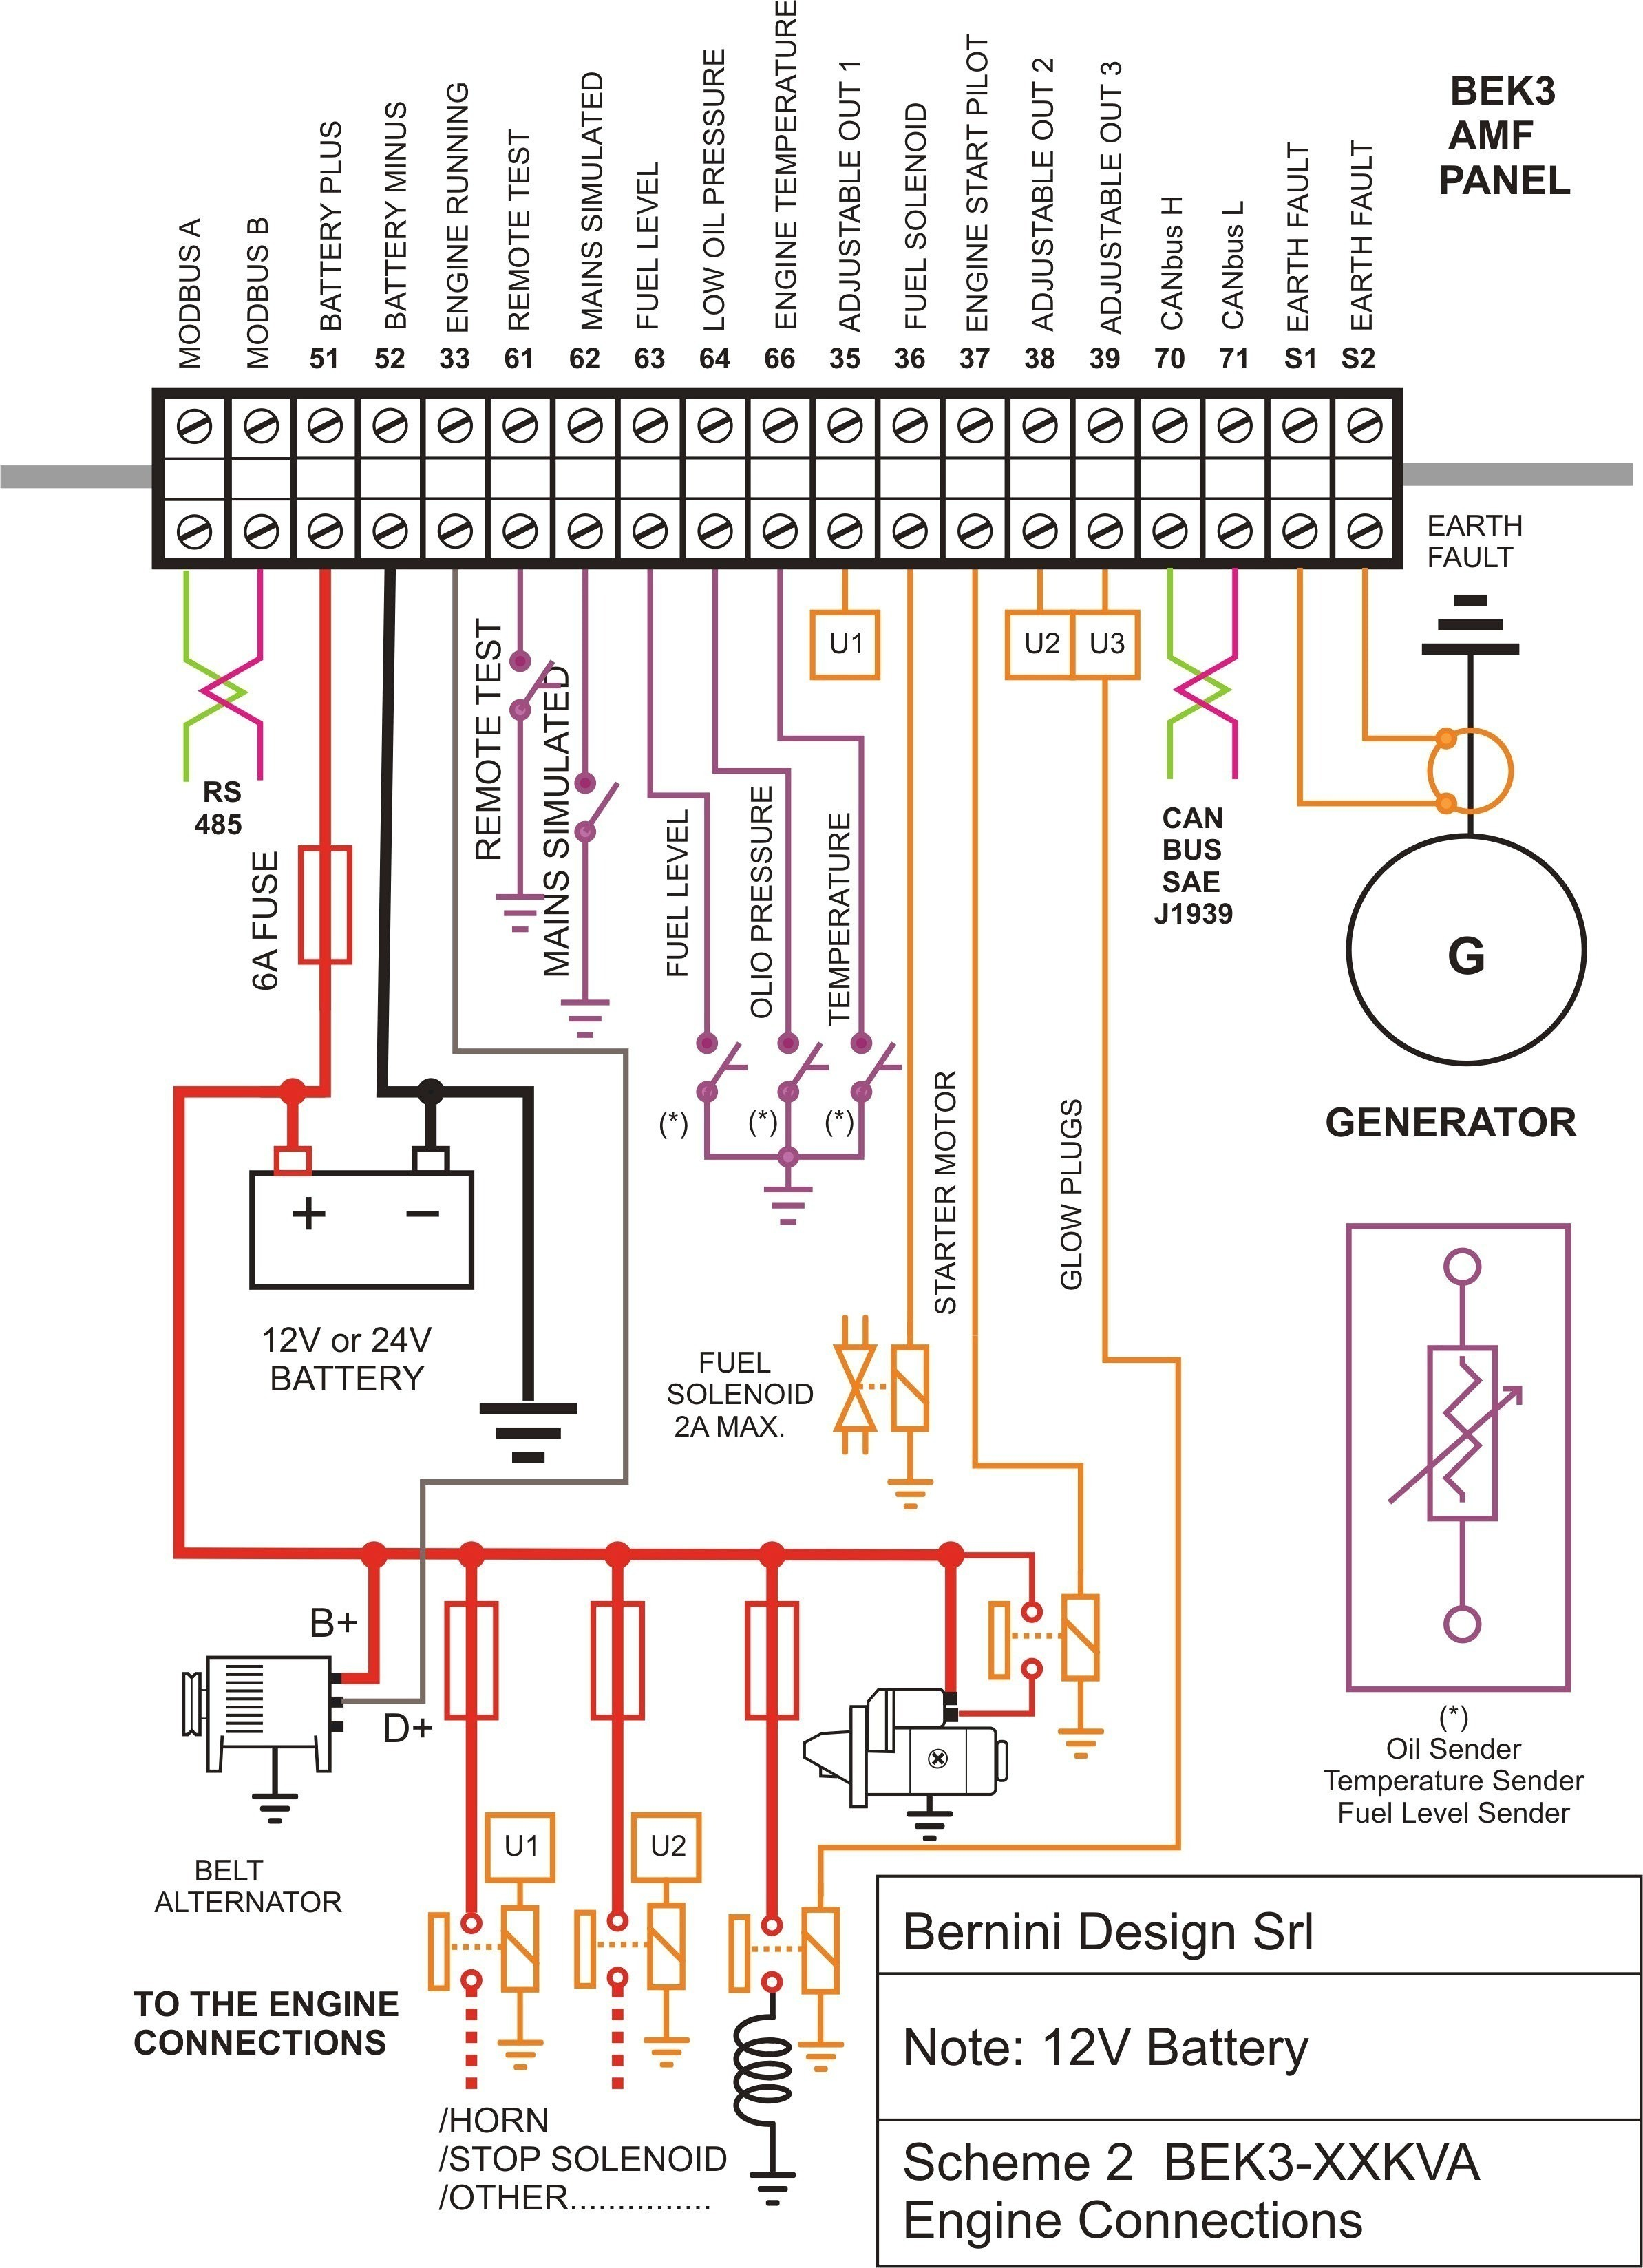 Home Electrical Wiring Diagrams Electrical Wiring Diagrams Best Electrical Diagram for House Of Home Electrical Wiring Diagrams